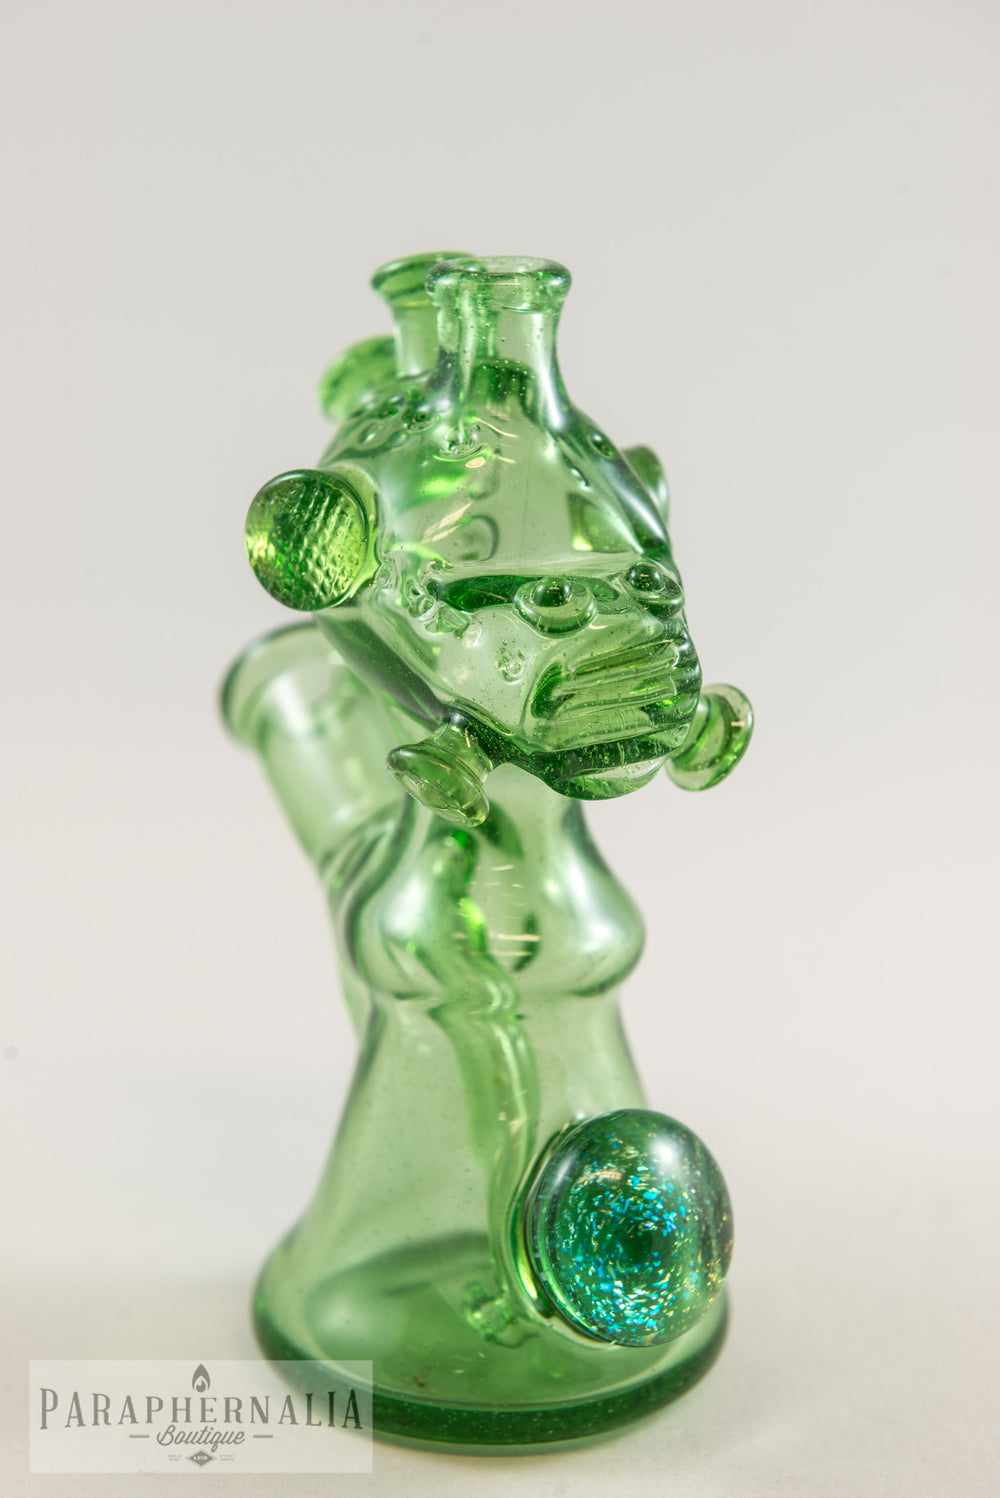 HicDogg Anunnaki Alien Astronaut Space Jammer Heady Rigs OTG Green - Headies